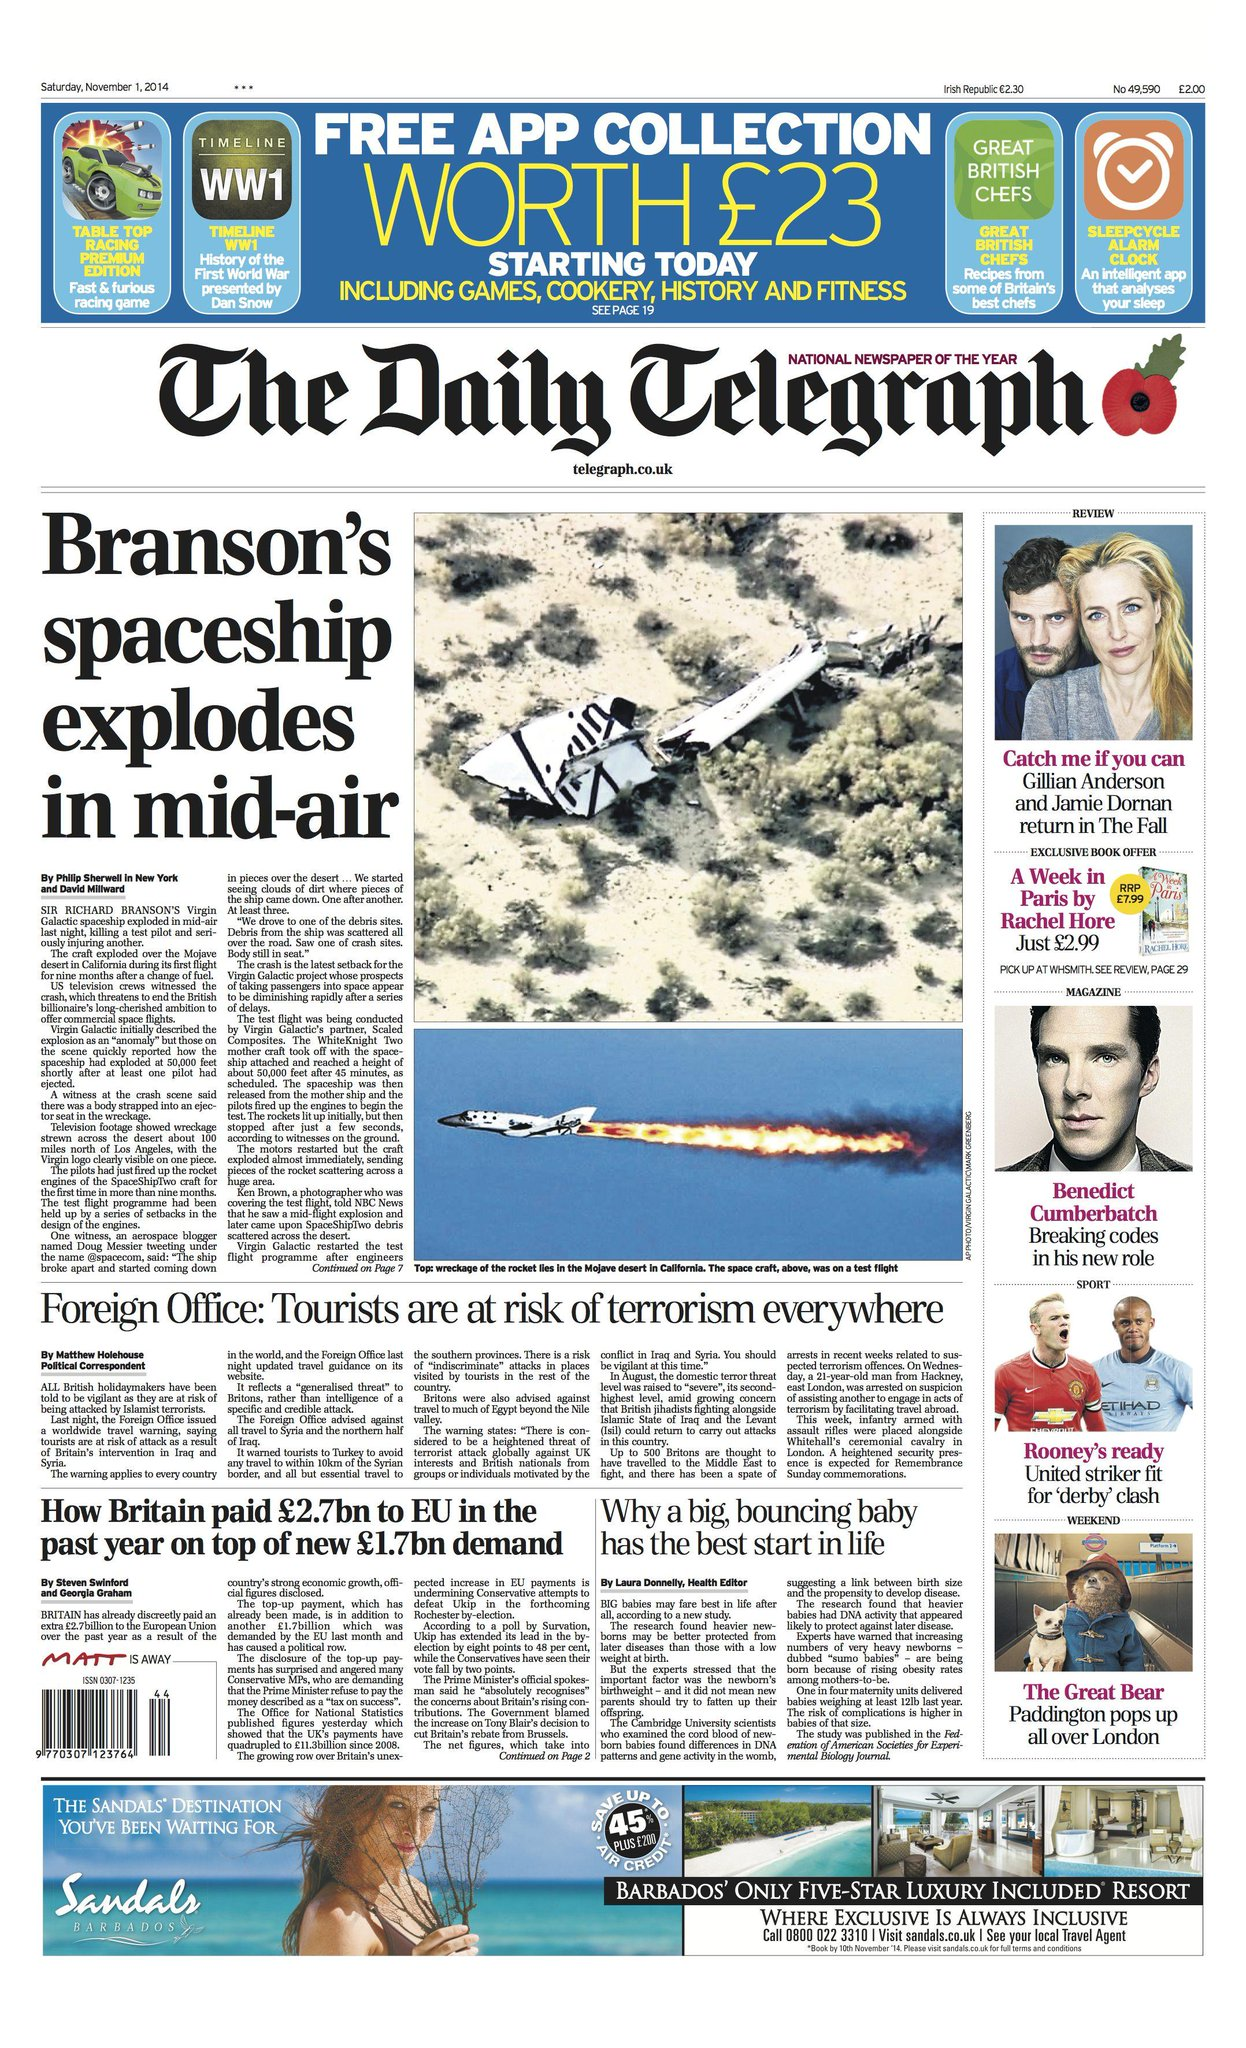 """Tomorrow's Daily Telegraph front page: """"Branson's spaceship explodes in mid-air"""" http://t.co/7tVL76vSh2"""